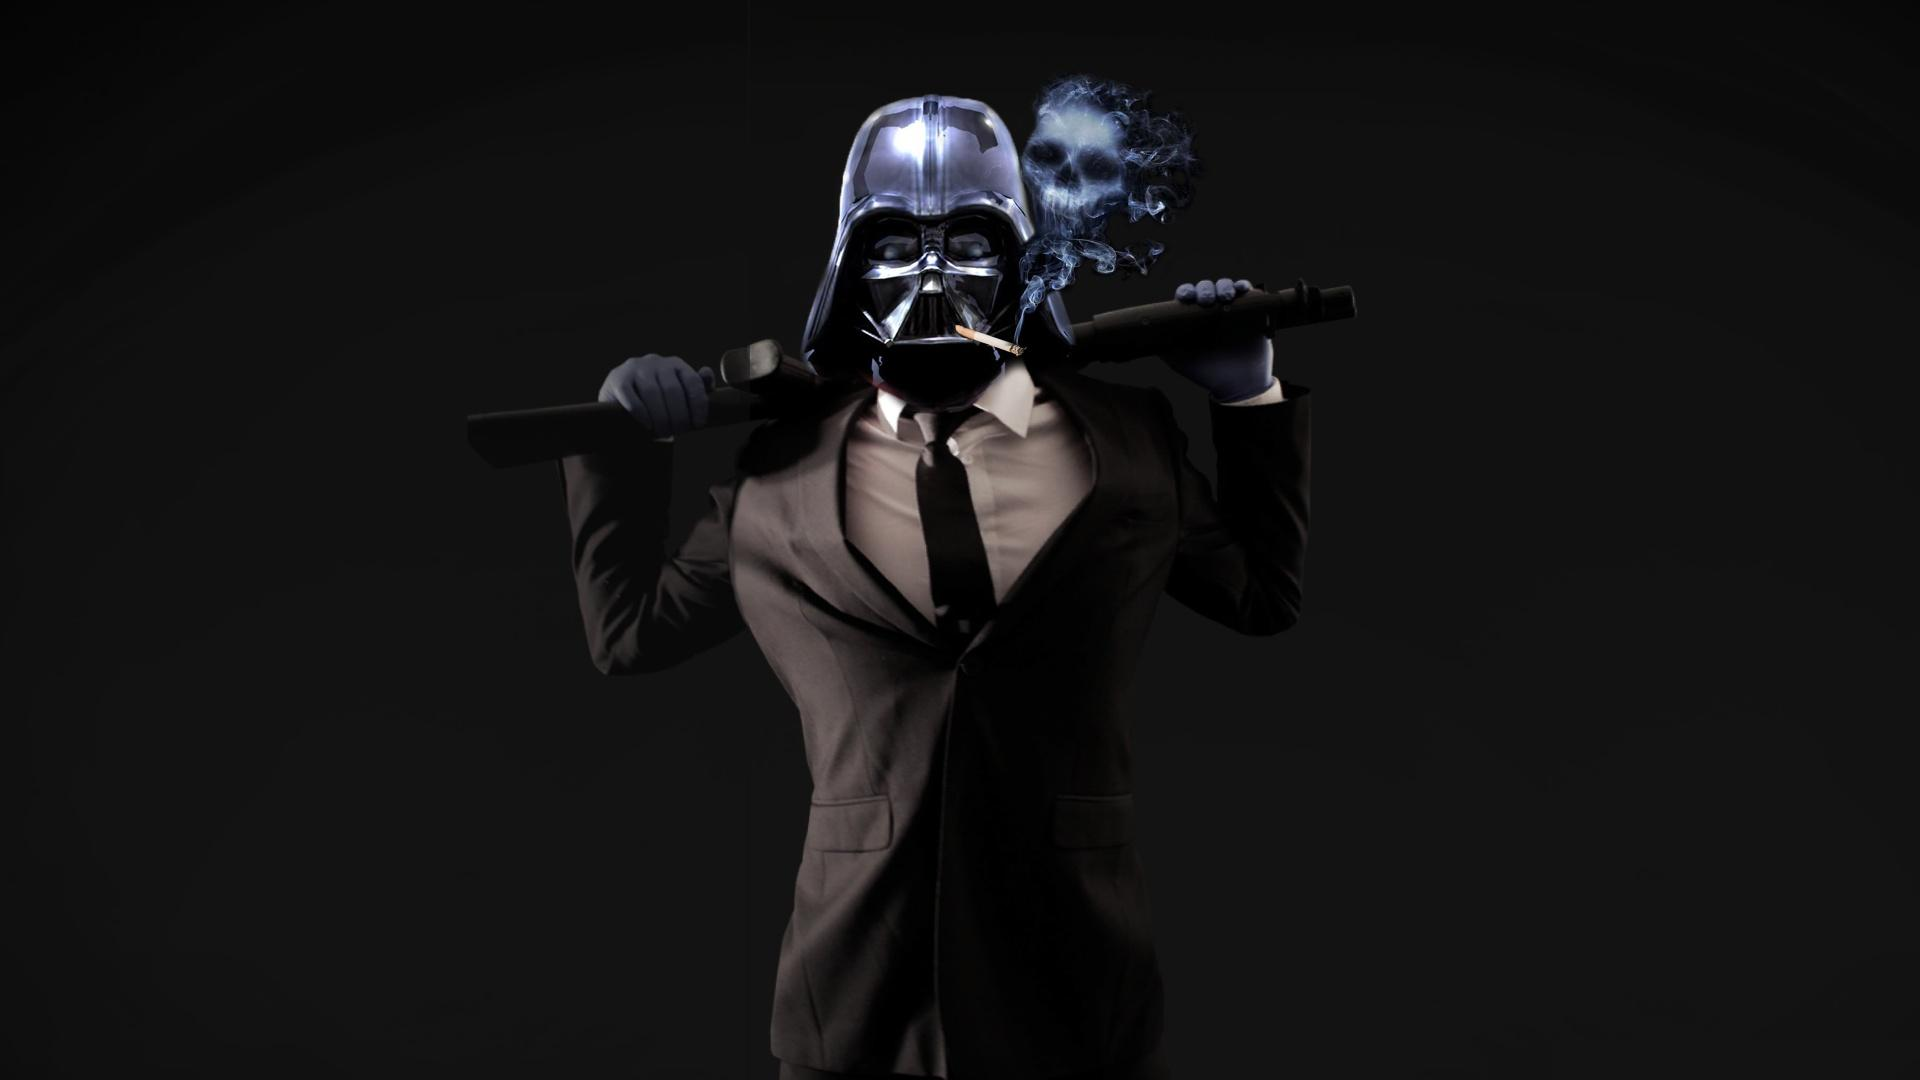 Mobile Darth Vader Pictures High Resolution